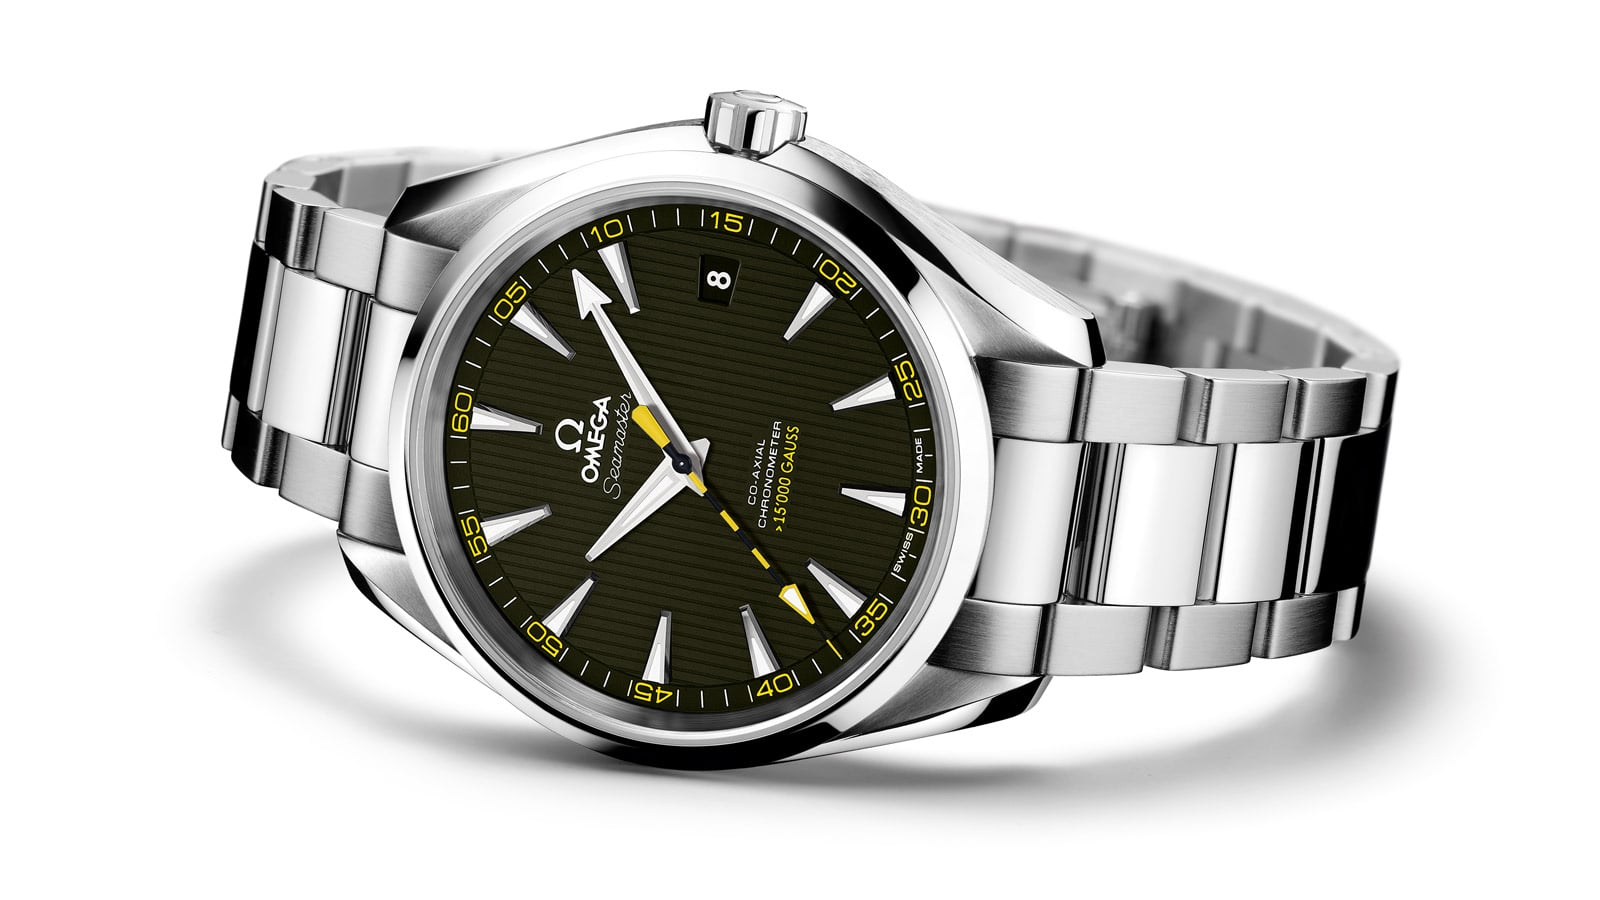 Aqua Terra 15,000 Gauss watch in stainless steel with a black dial and yellow accents